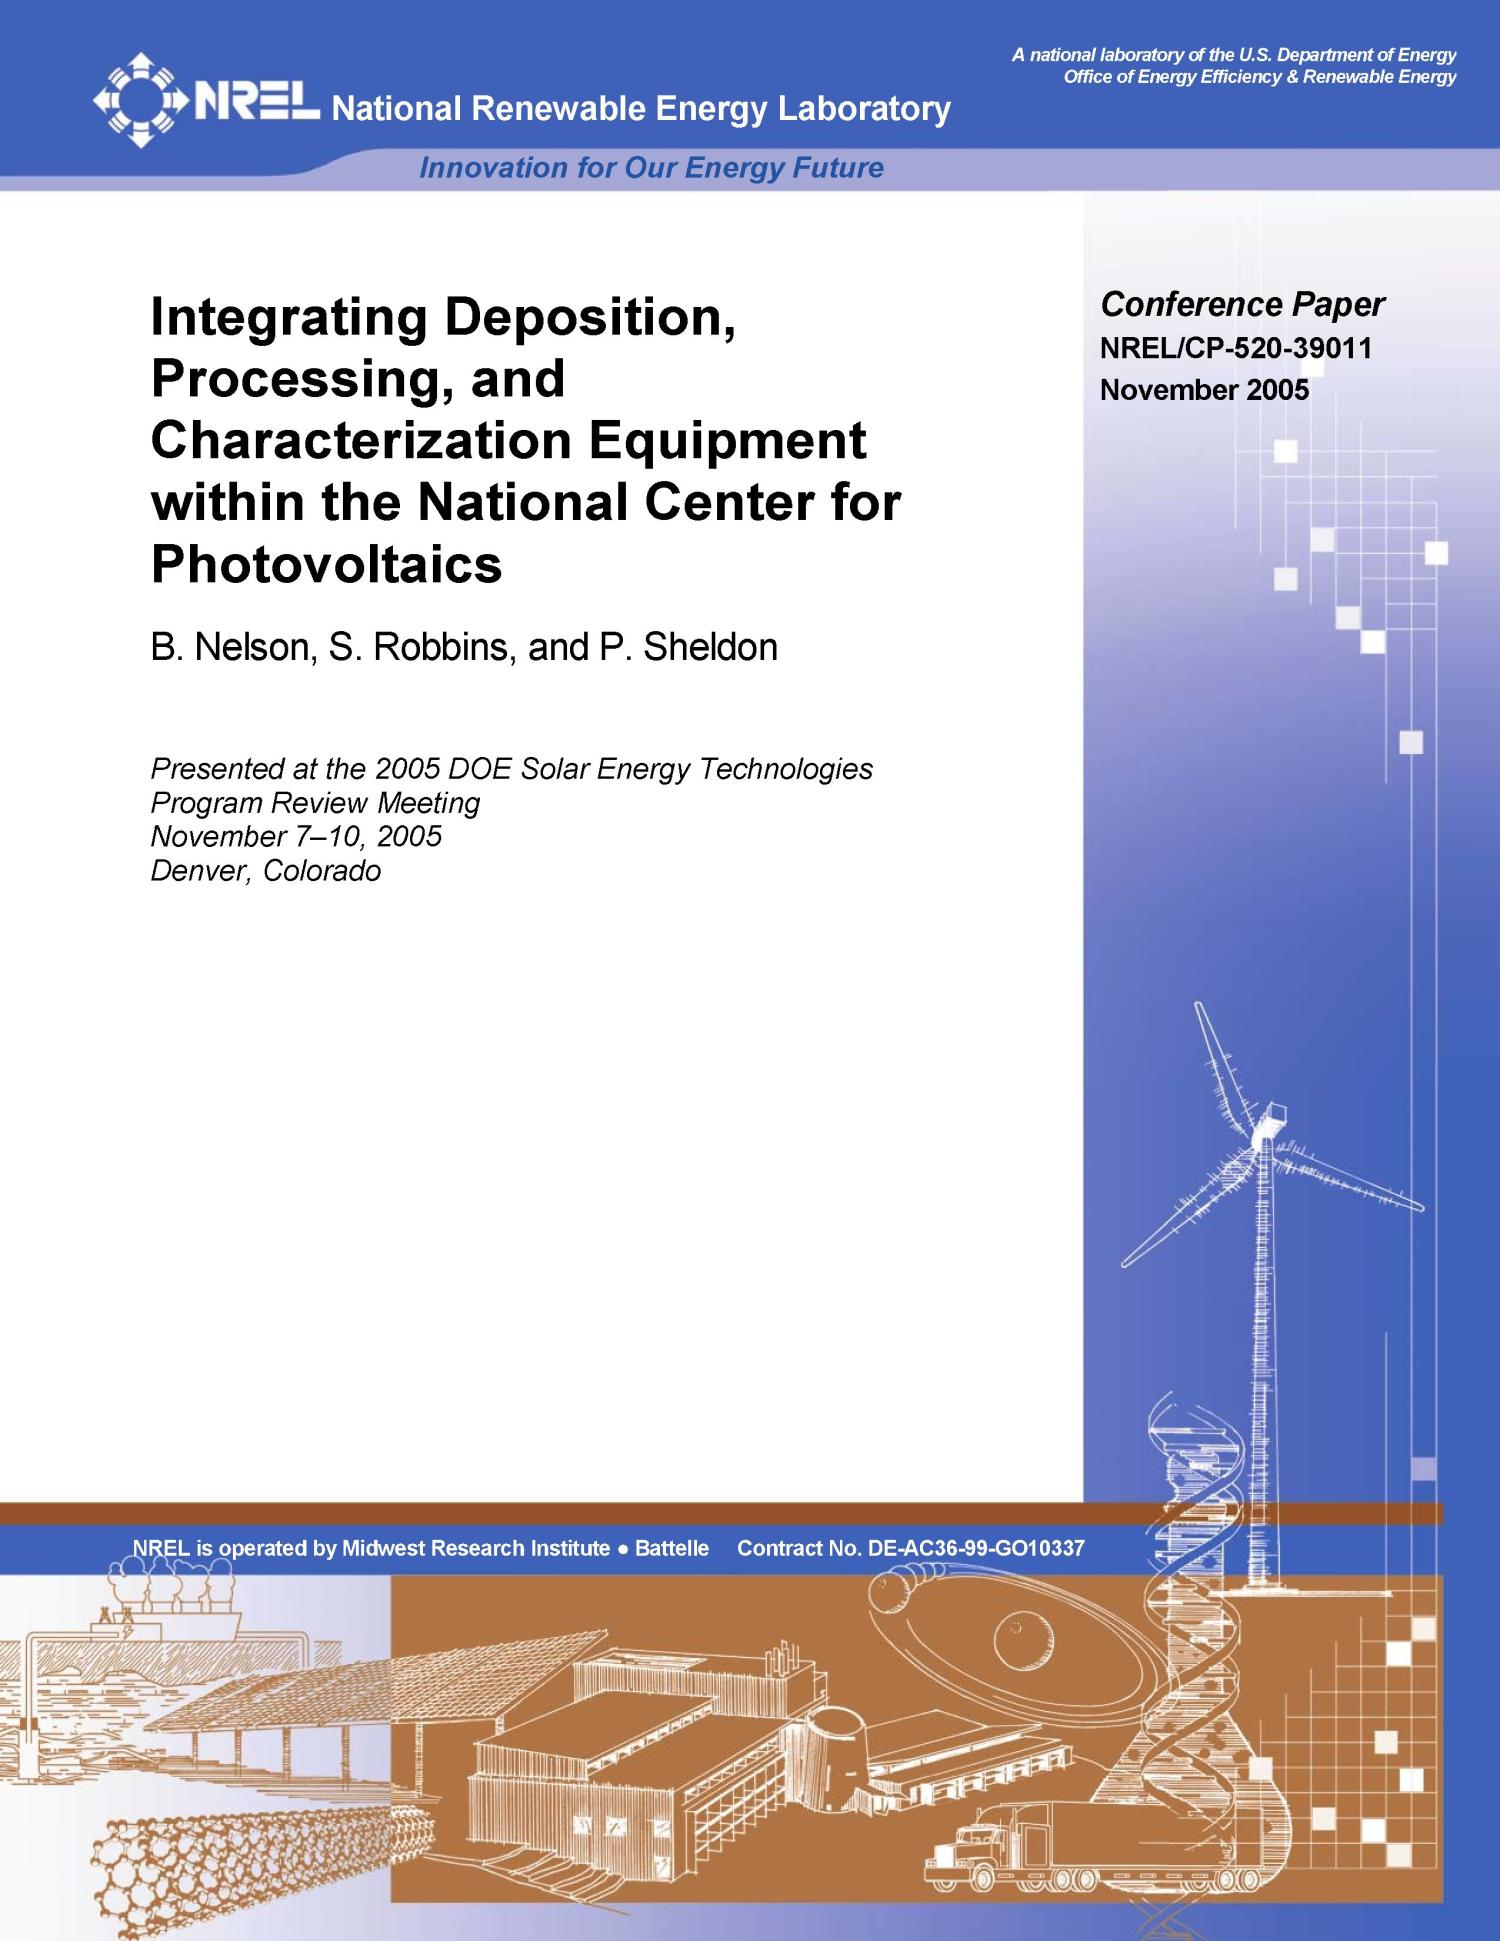 Integrating Deposition, Processing, and Characterization Equipment within the National Center for Photovoltaics                                                                                                      [Sequence #]: 1 of 5